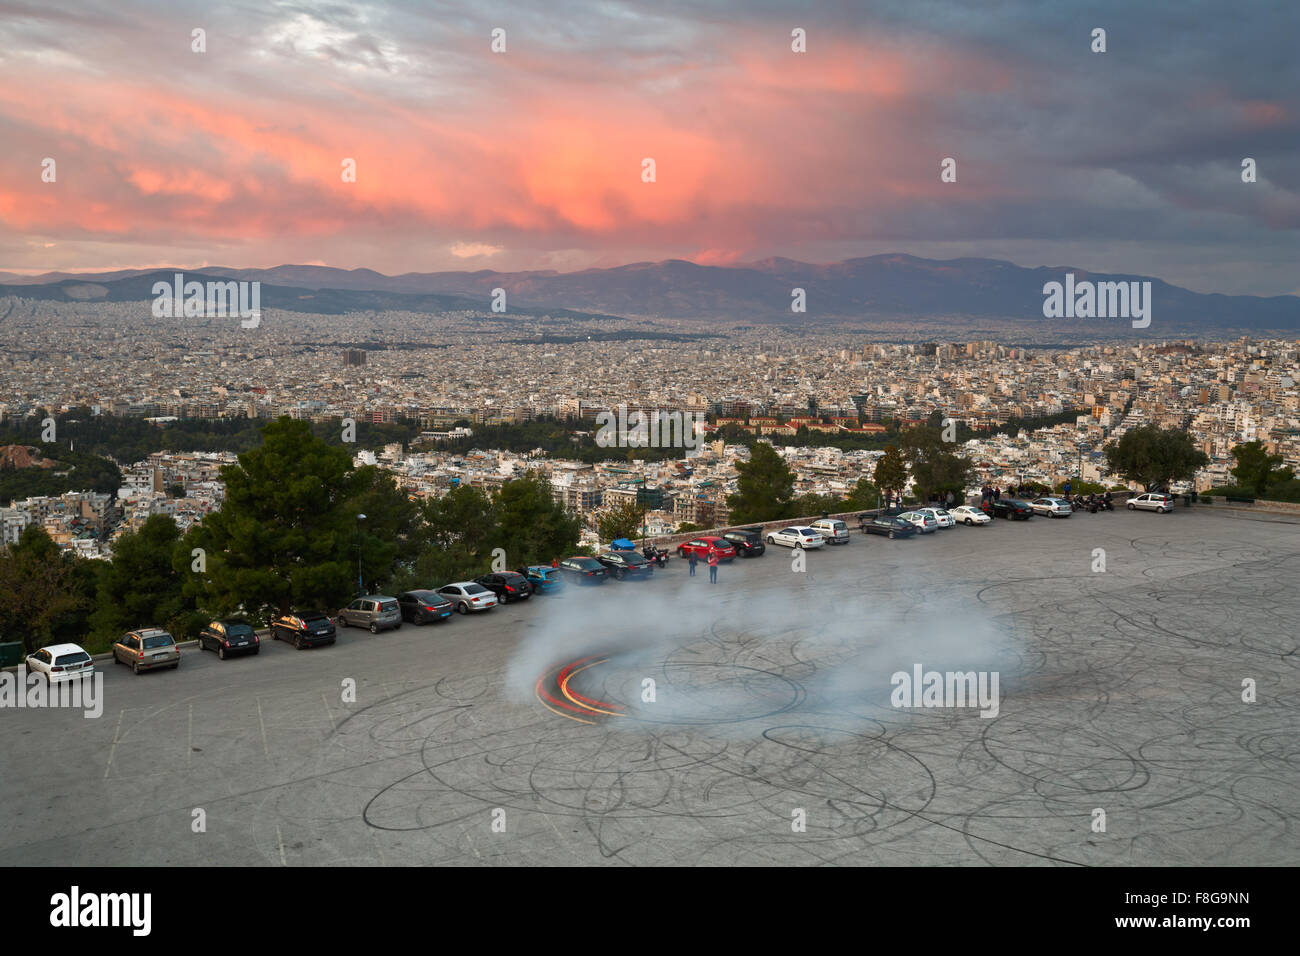 Parking place on Lycabettus Hill in Athens, Greece. - Stock Image